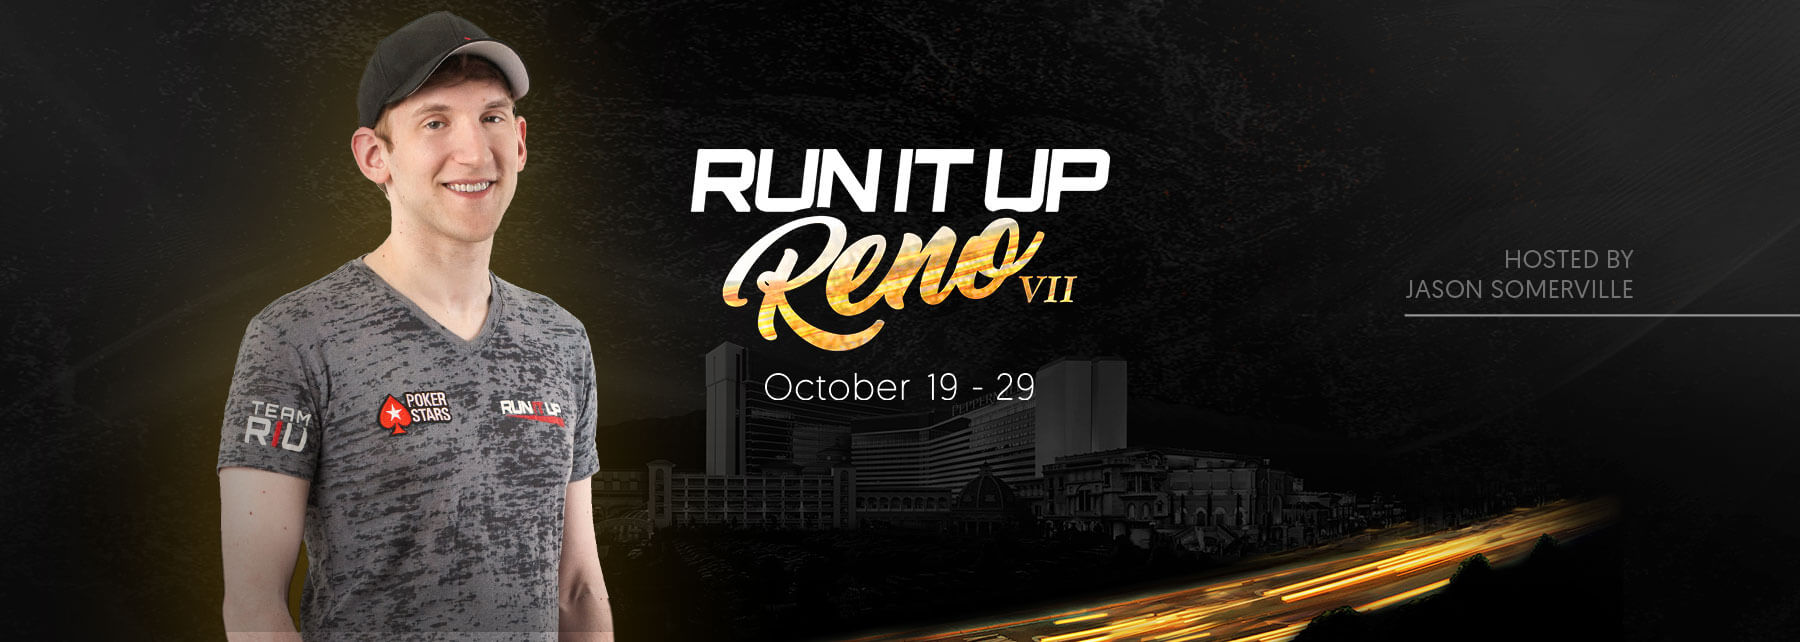 Run It Up Reno VII